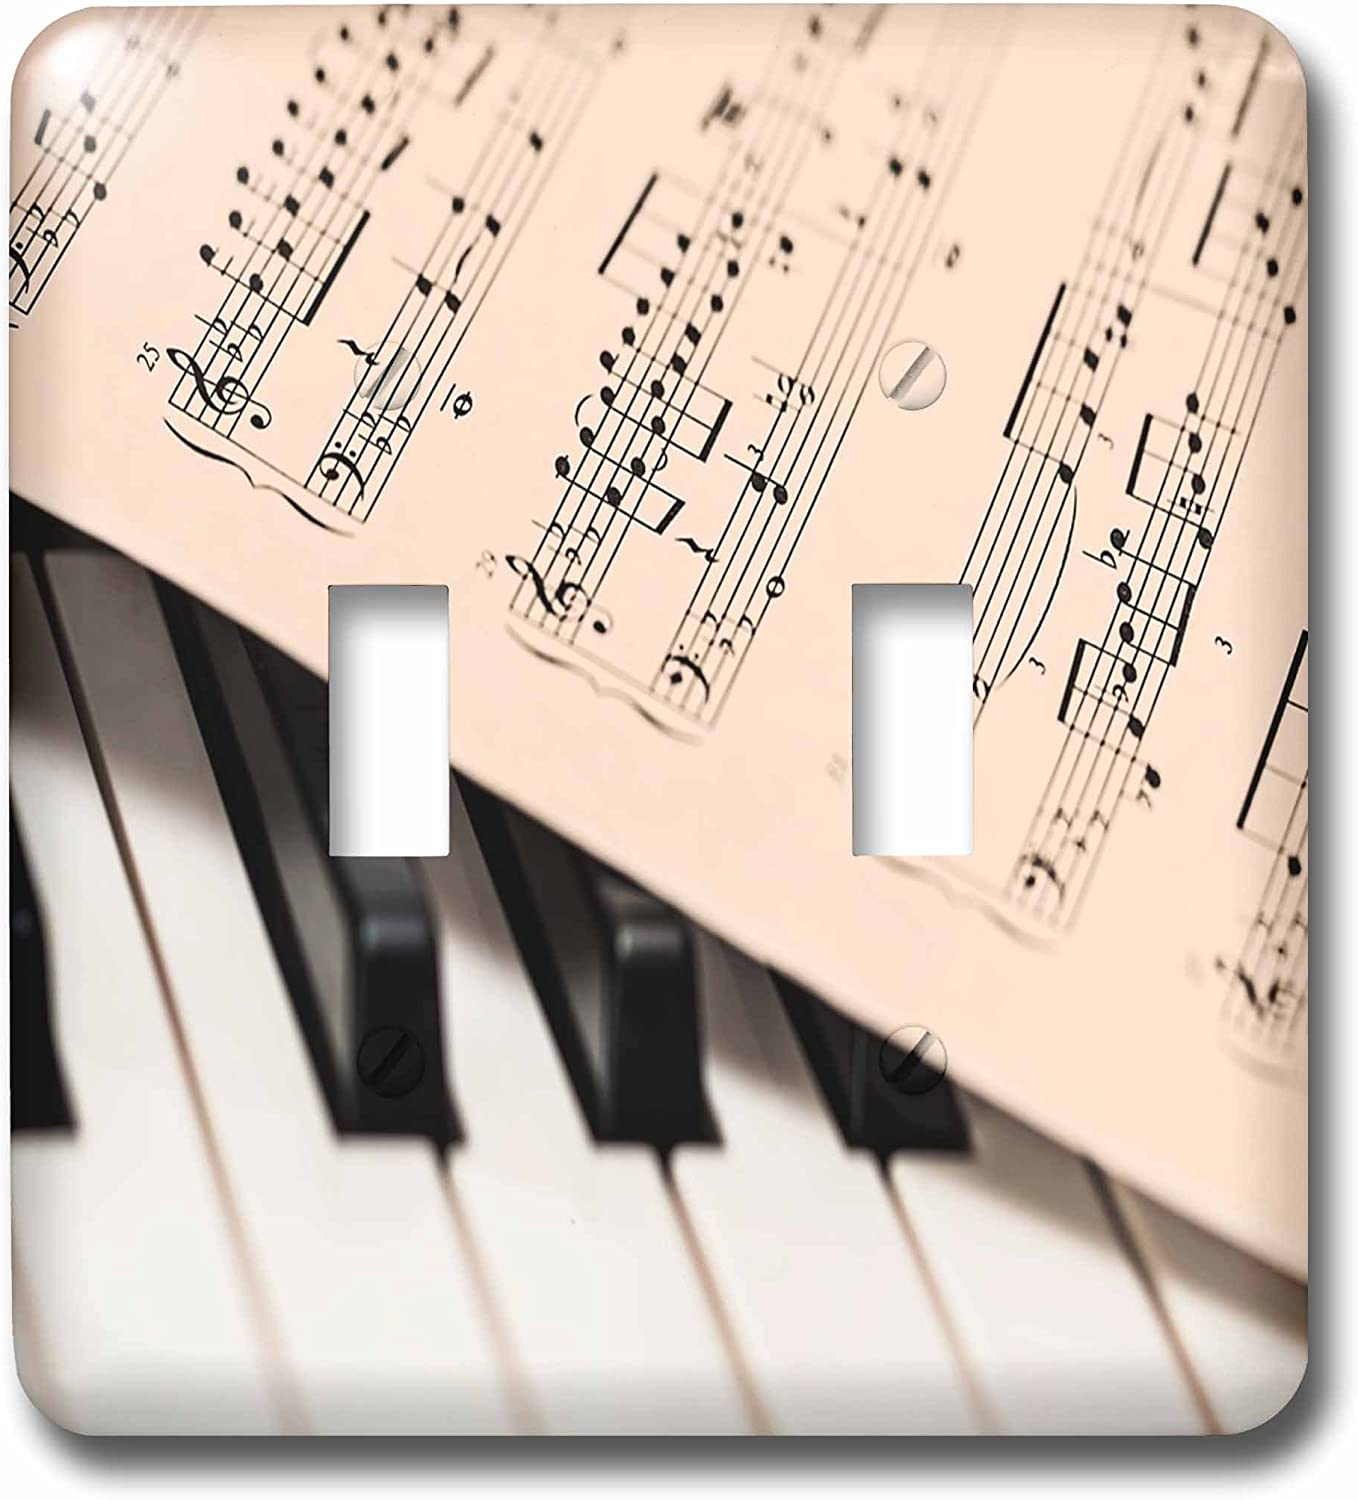 3drose Lsp 255452 2 Double Toggle Switch Image Of Closeup Of Piano And Music Sheet Amazon Com